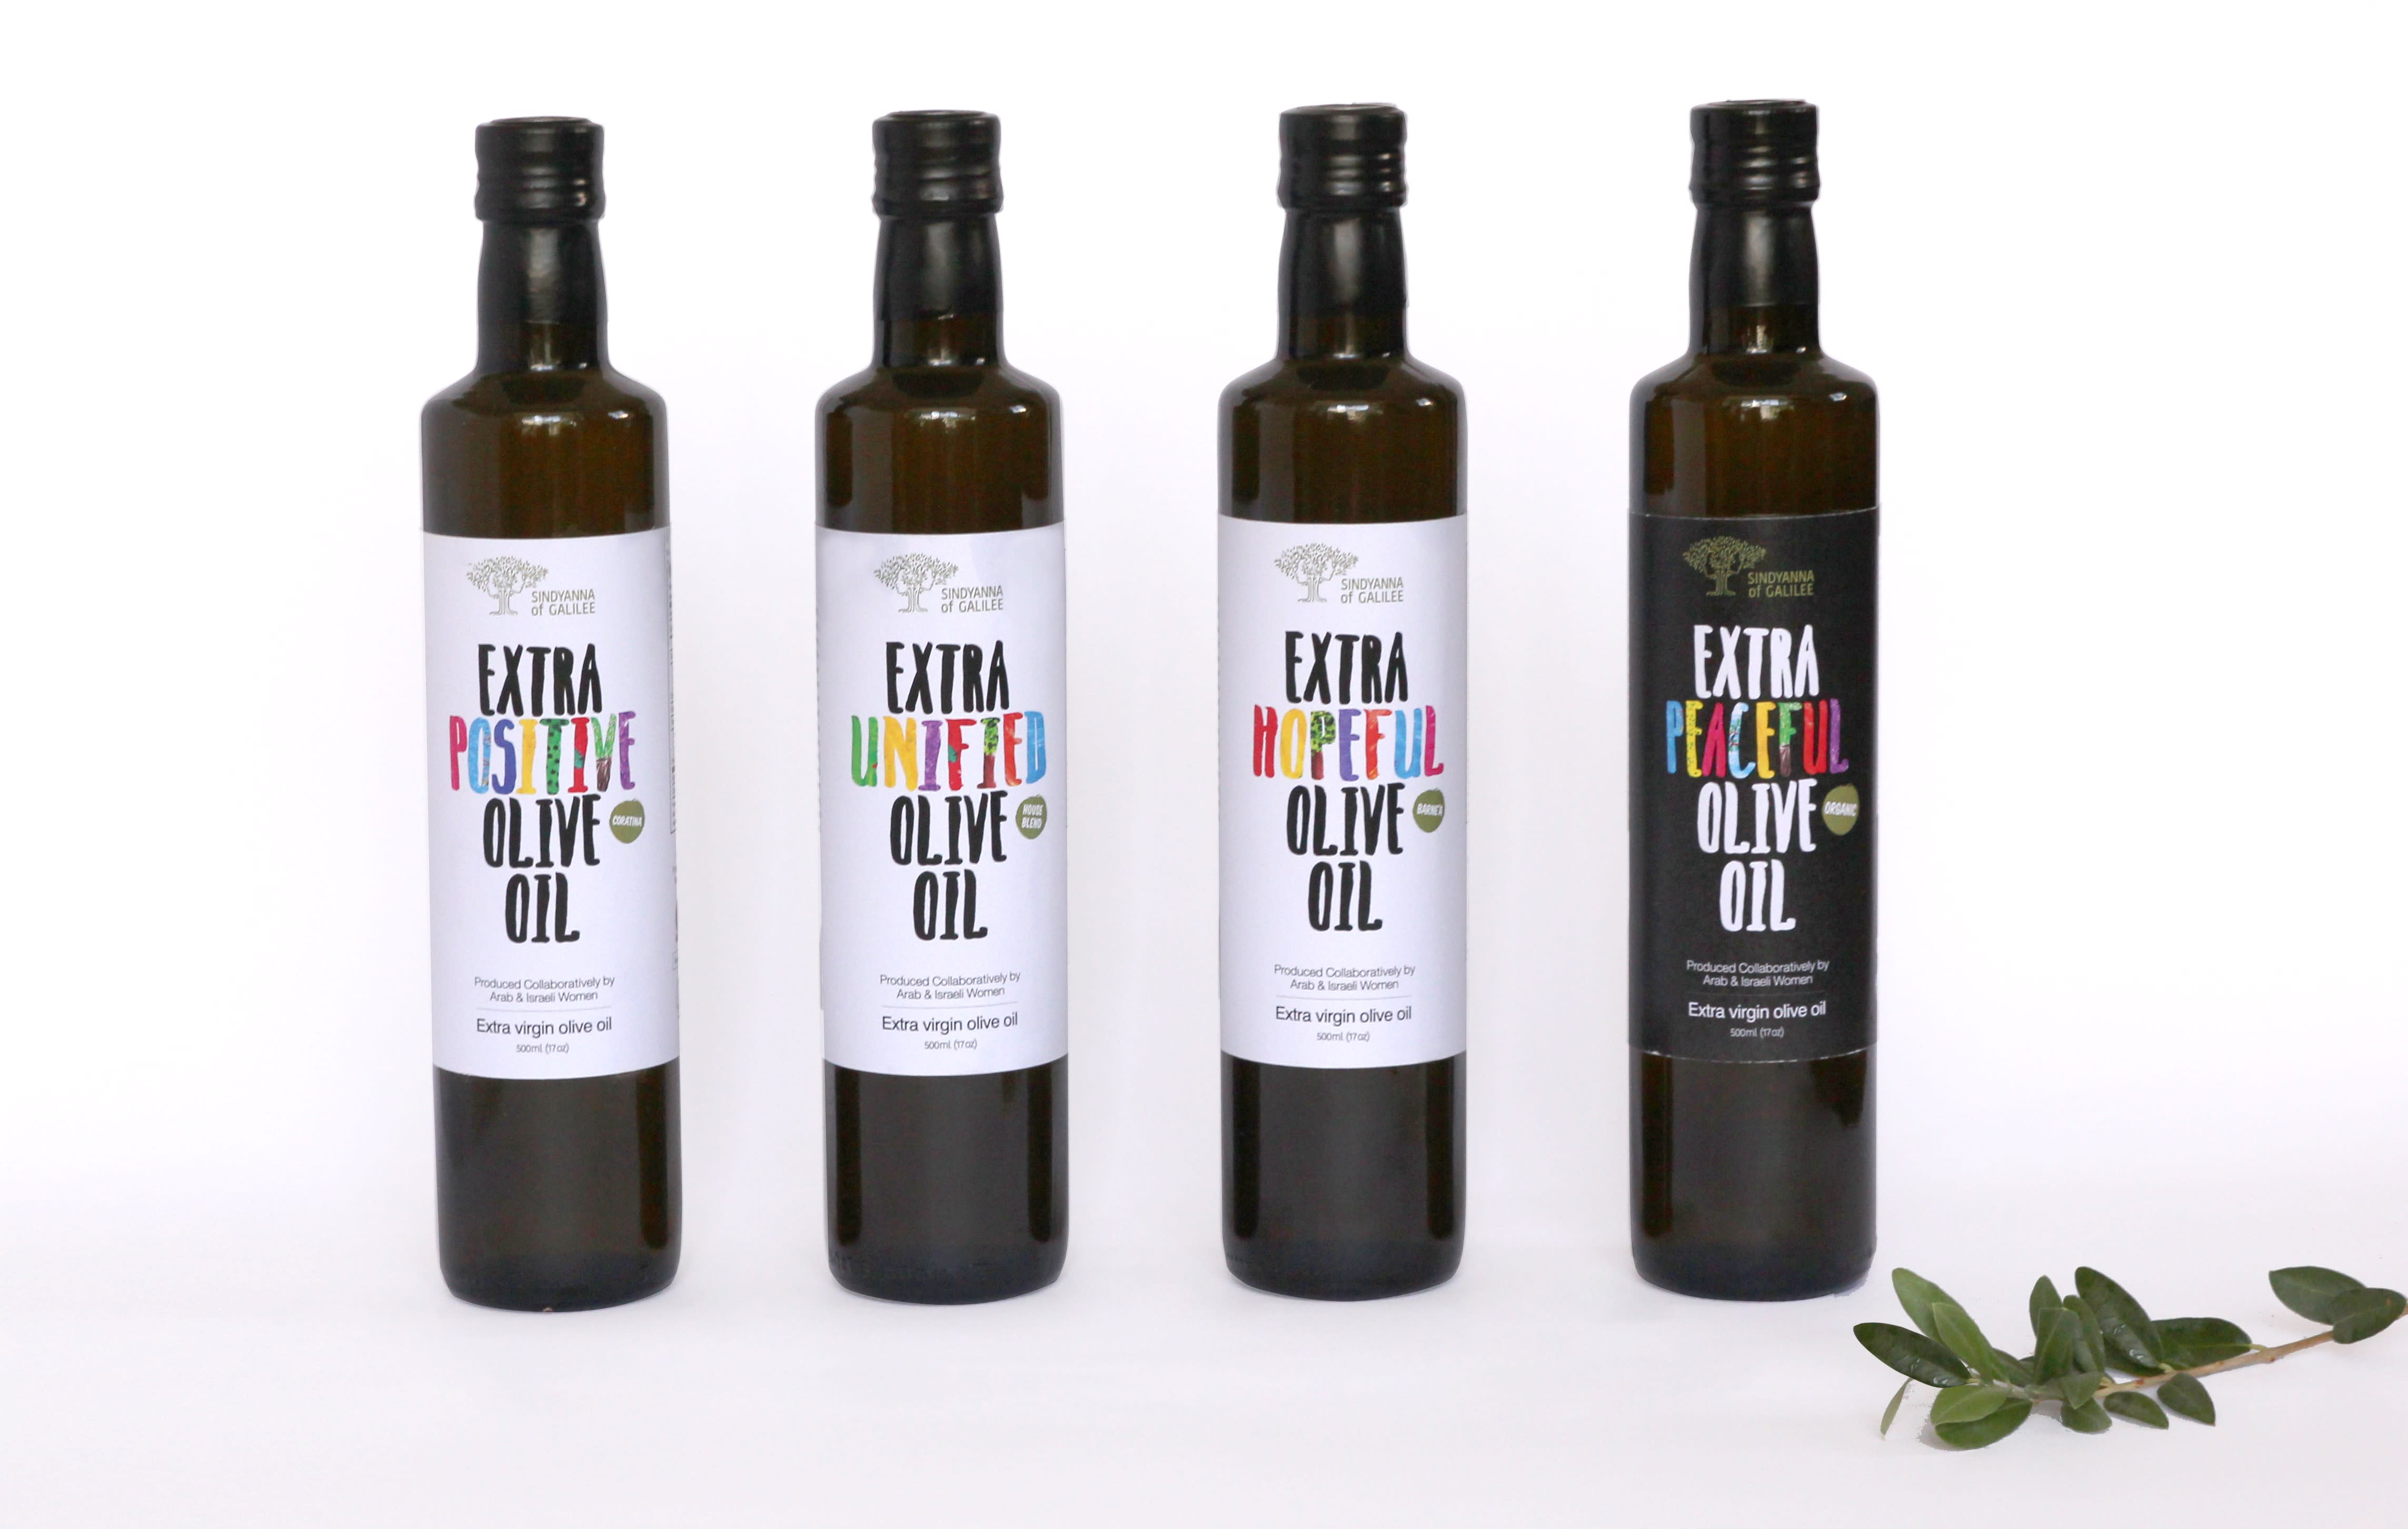 Sindyanna's award winning olive oils are also exported.